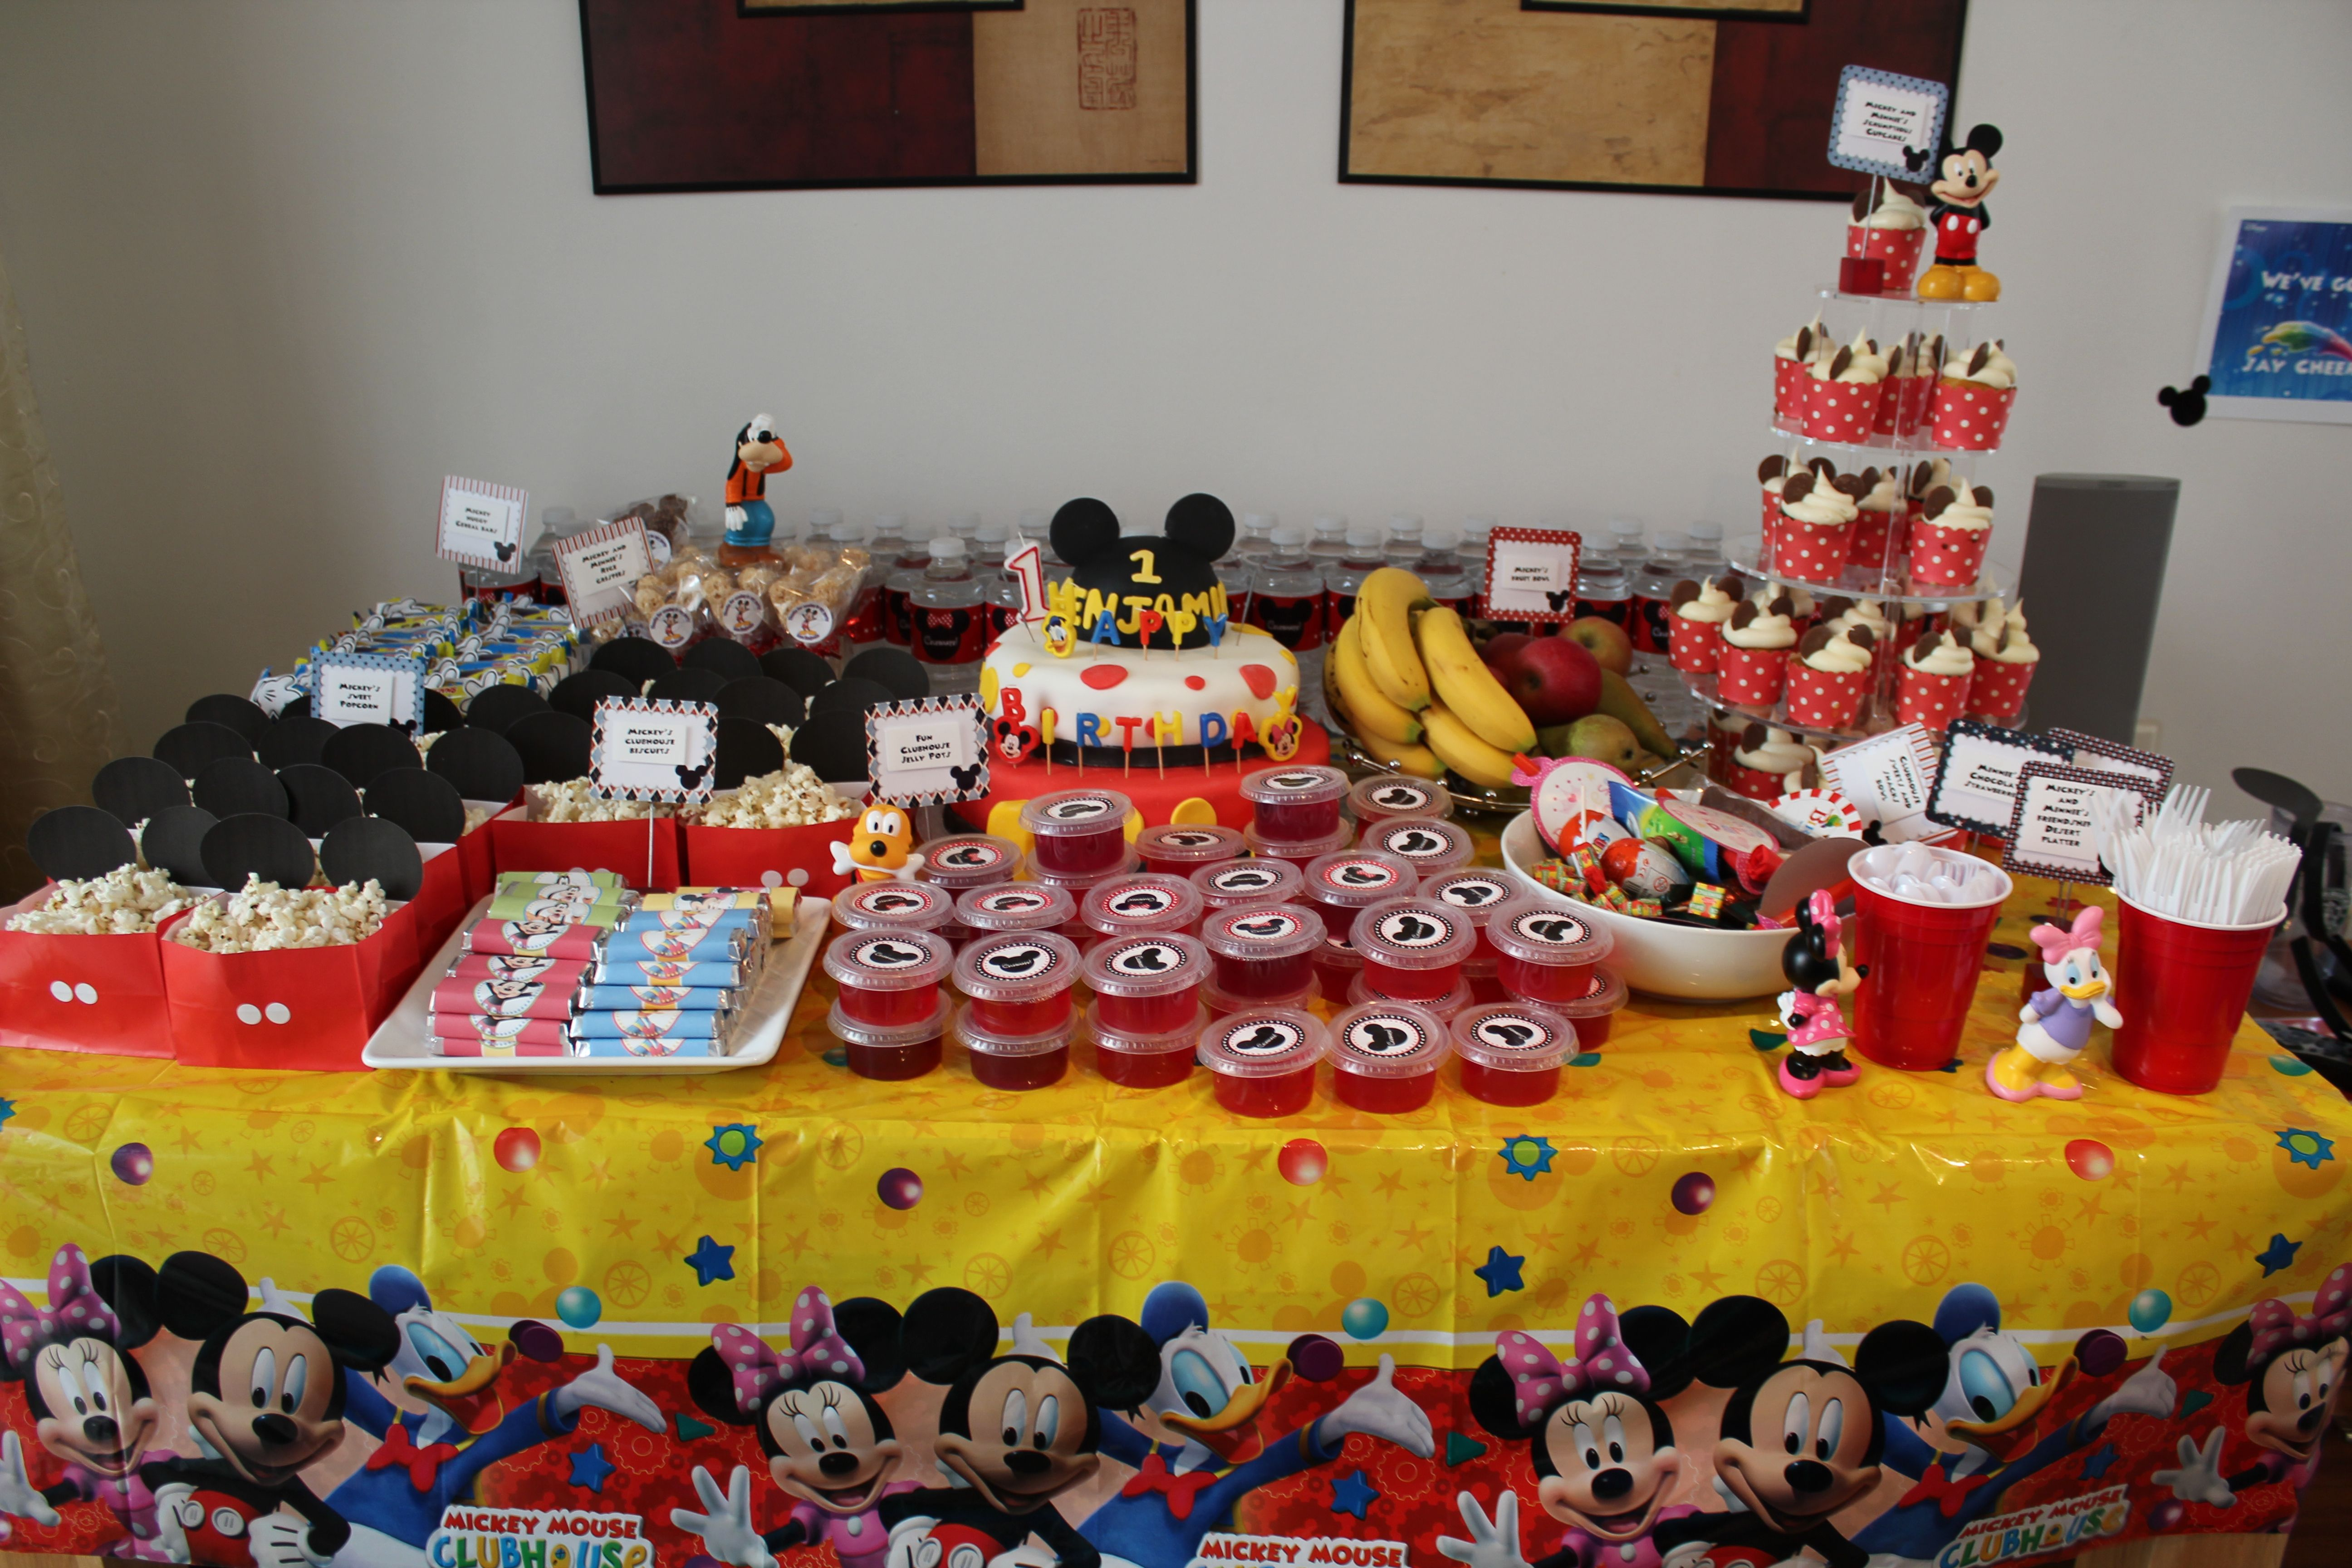 Complete table of cakes, goodies and sweets. Mickey bags with popcornjelly pots Mickey shaped rice crispies Mickey and friends chocolate biscuit bars Mickey water bottles Mickey